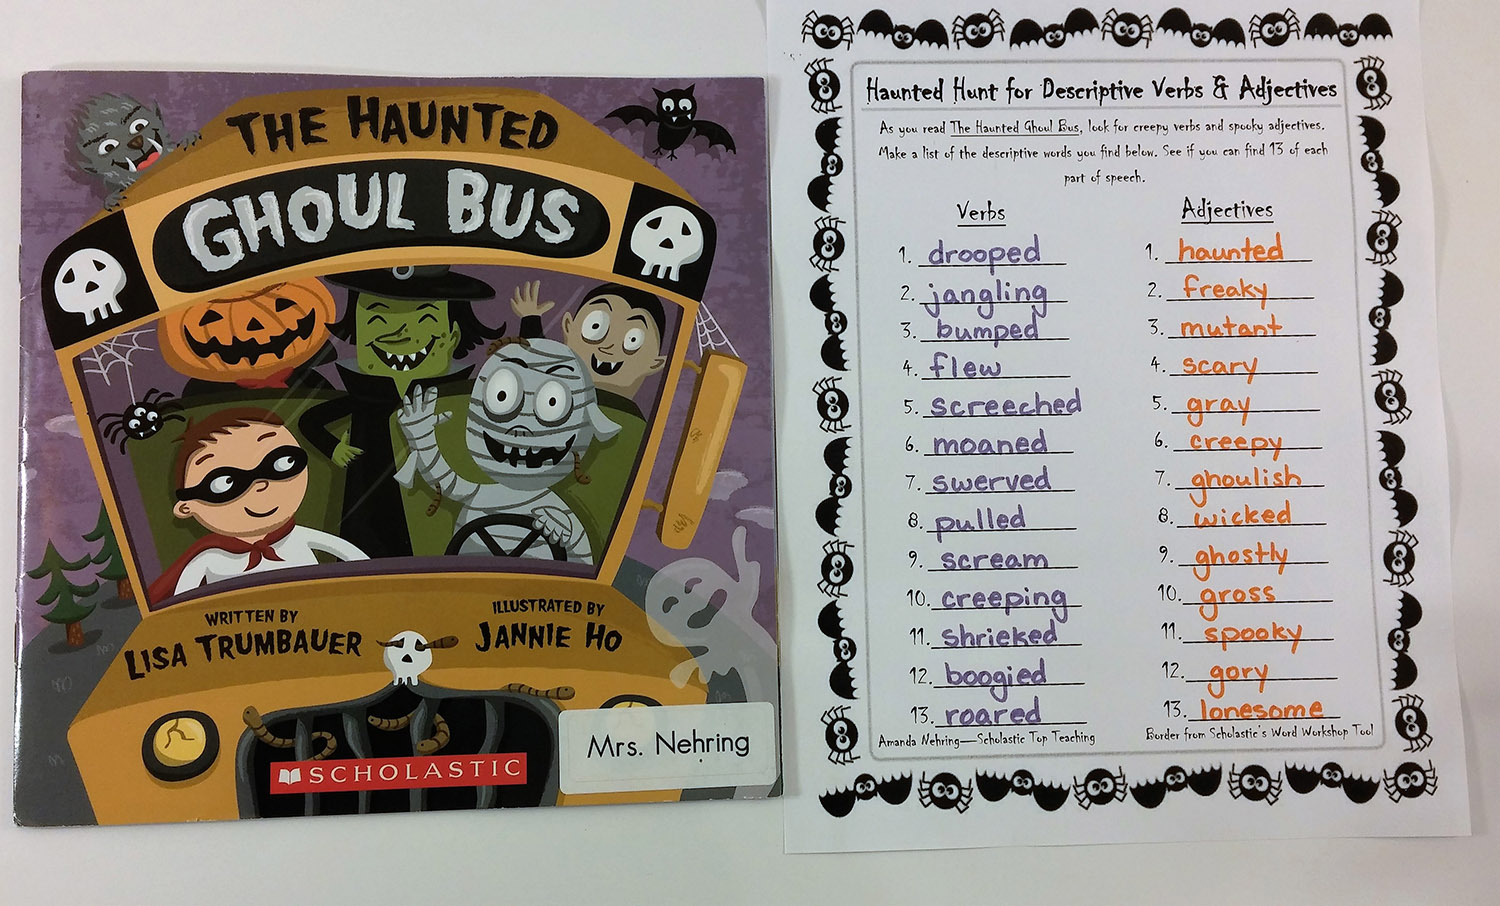 Hunt for descriptive verbs and adjectives in The Haunted Ghoul Bus.